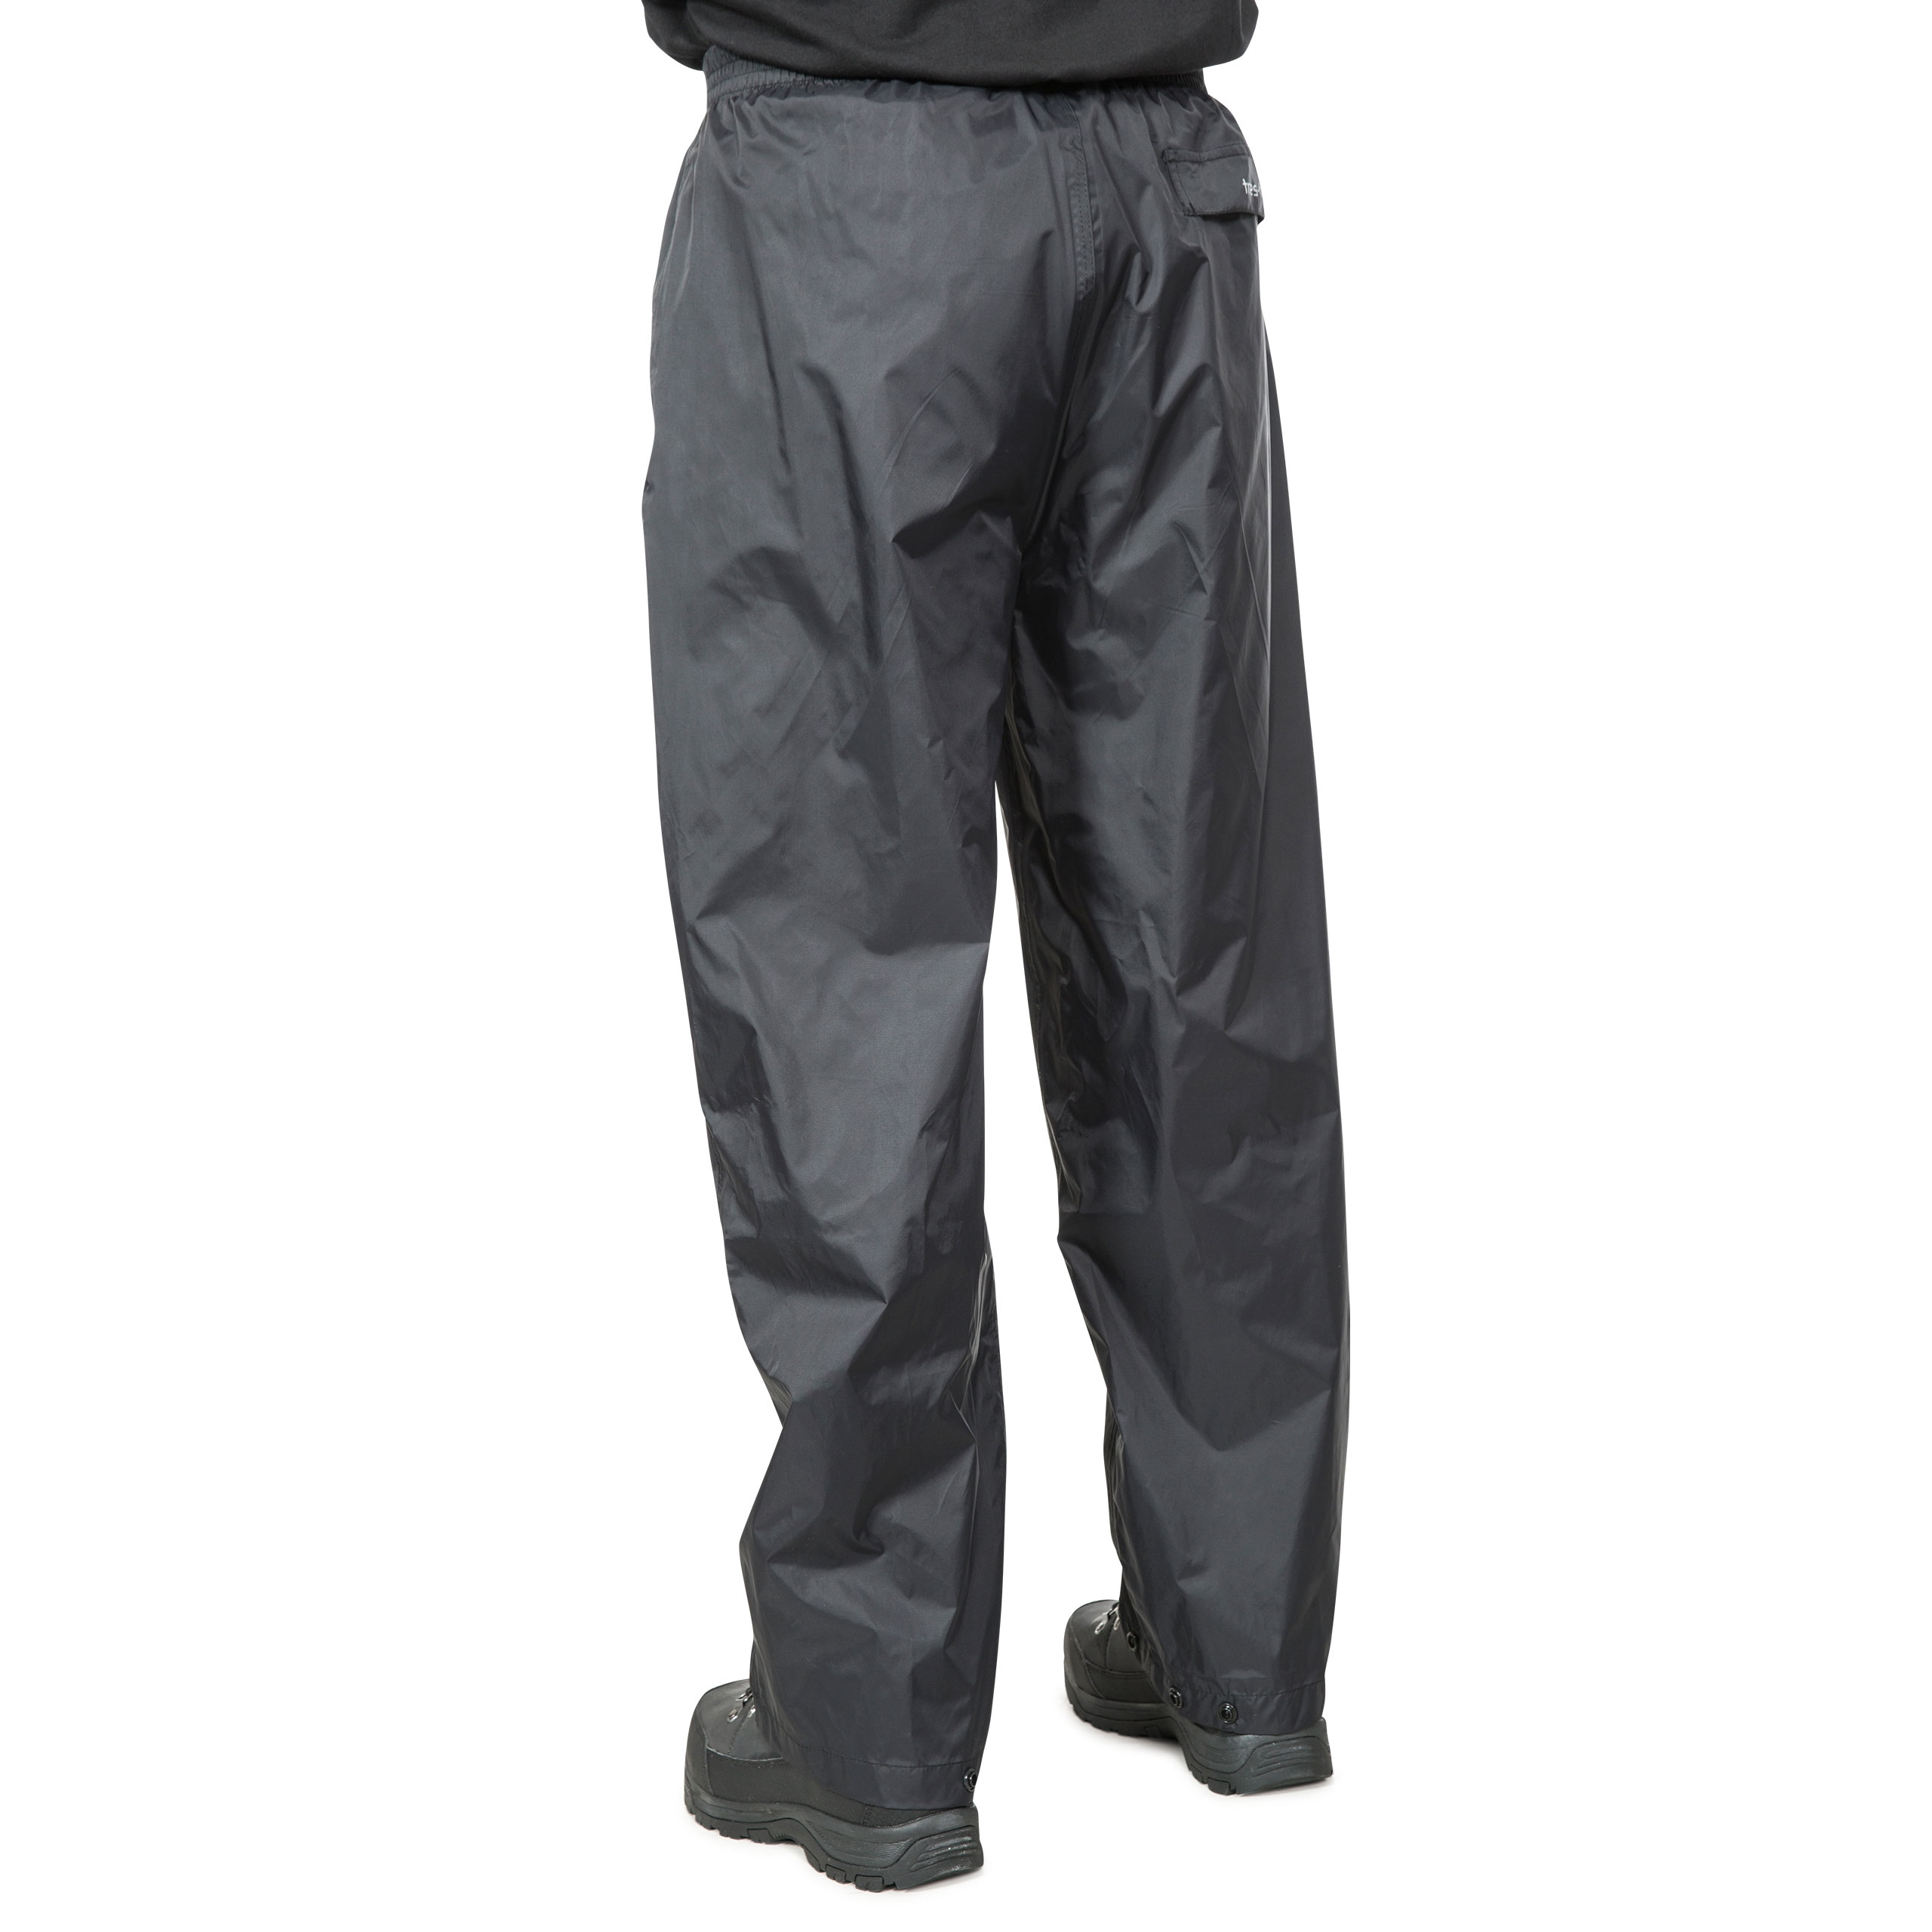 Trespass-Mens-Womens-Waterproof-Trousers-Packaway-Breathable-Qikpac thumbnail 9